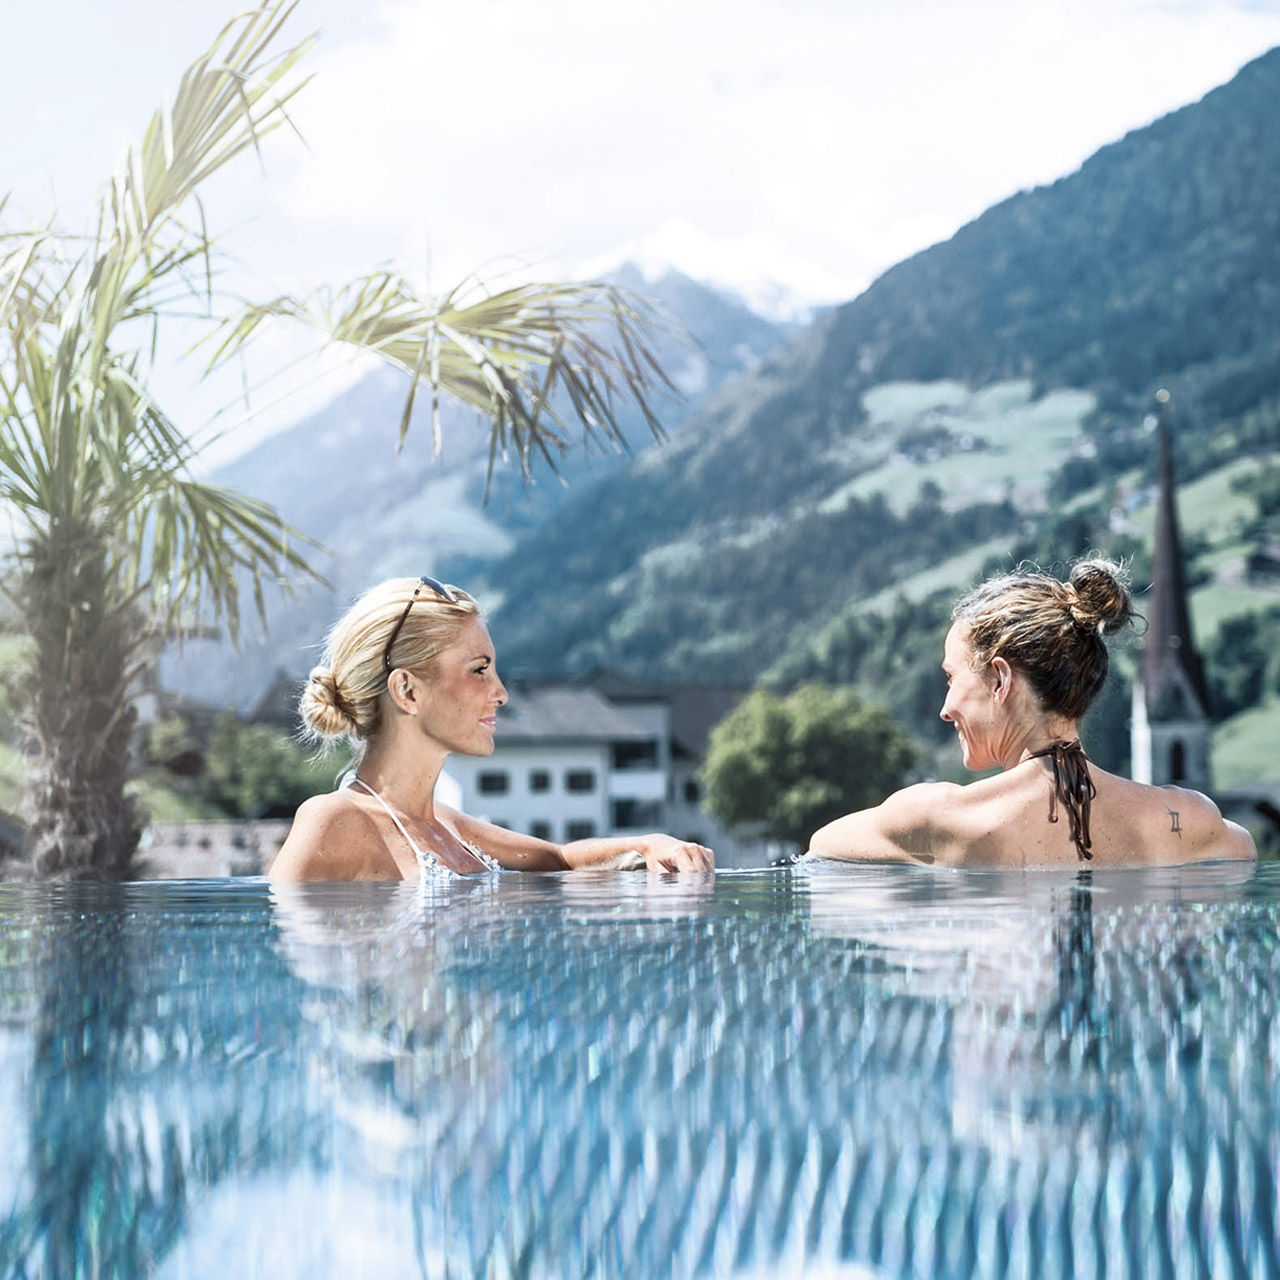 Two women relaxing in swimming pool